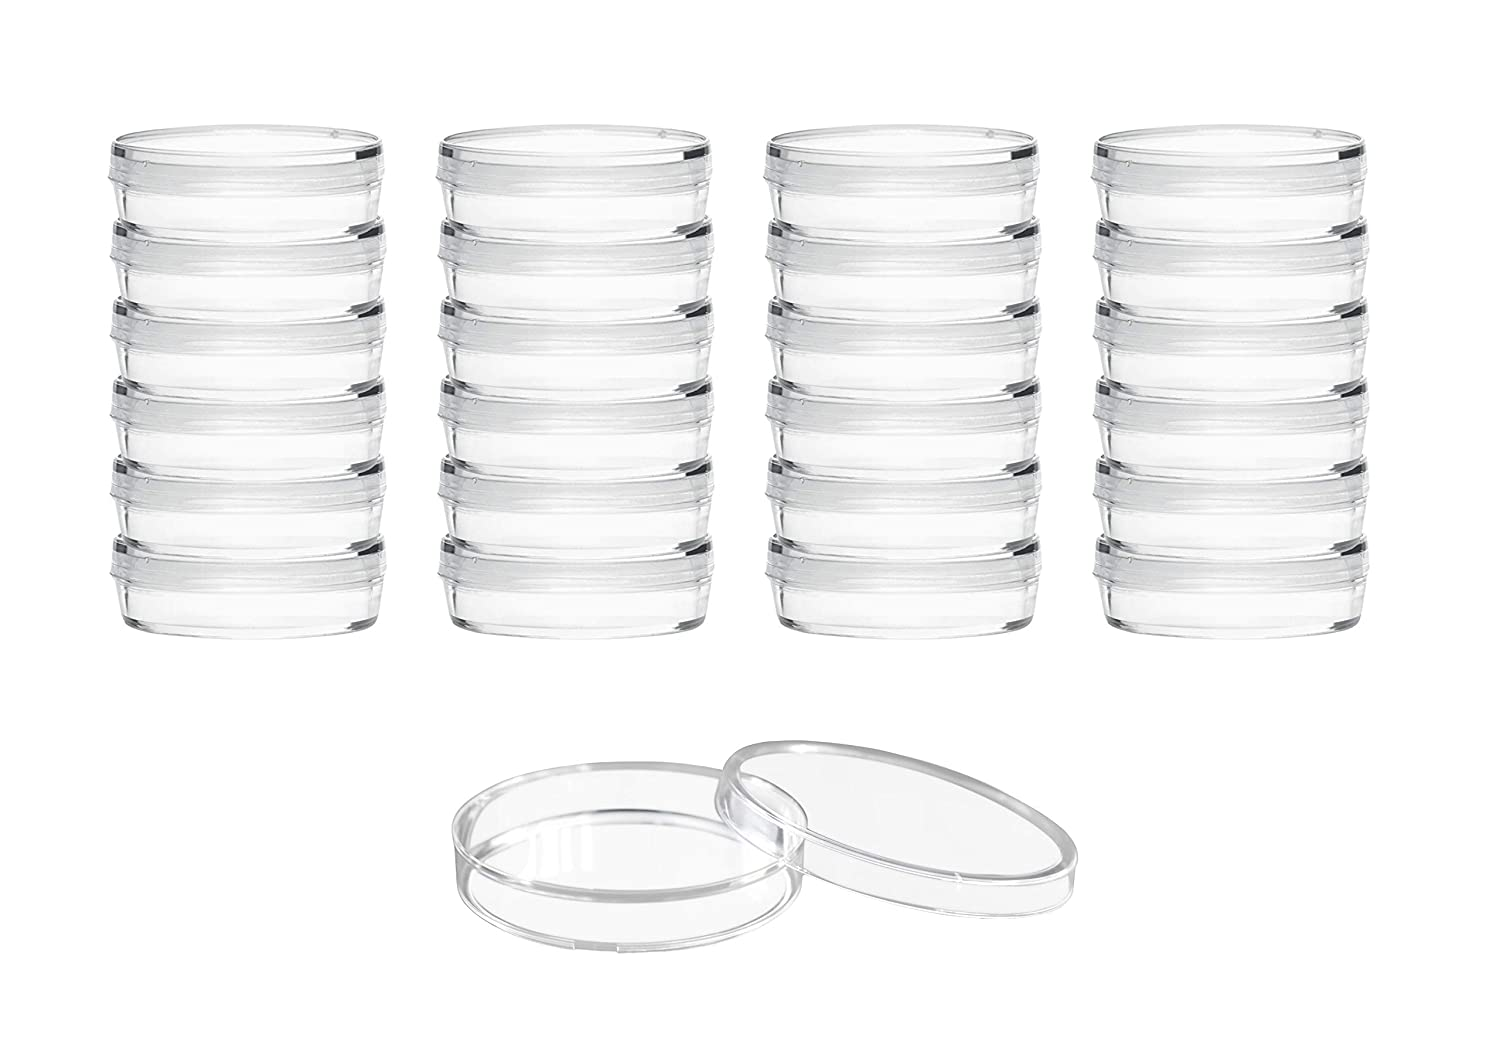 25PK Disposable Petri Dishes with Sterile Diameter Lids 1.4